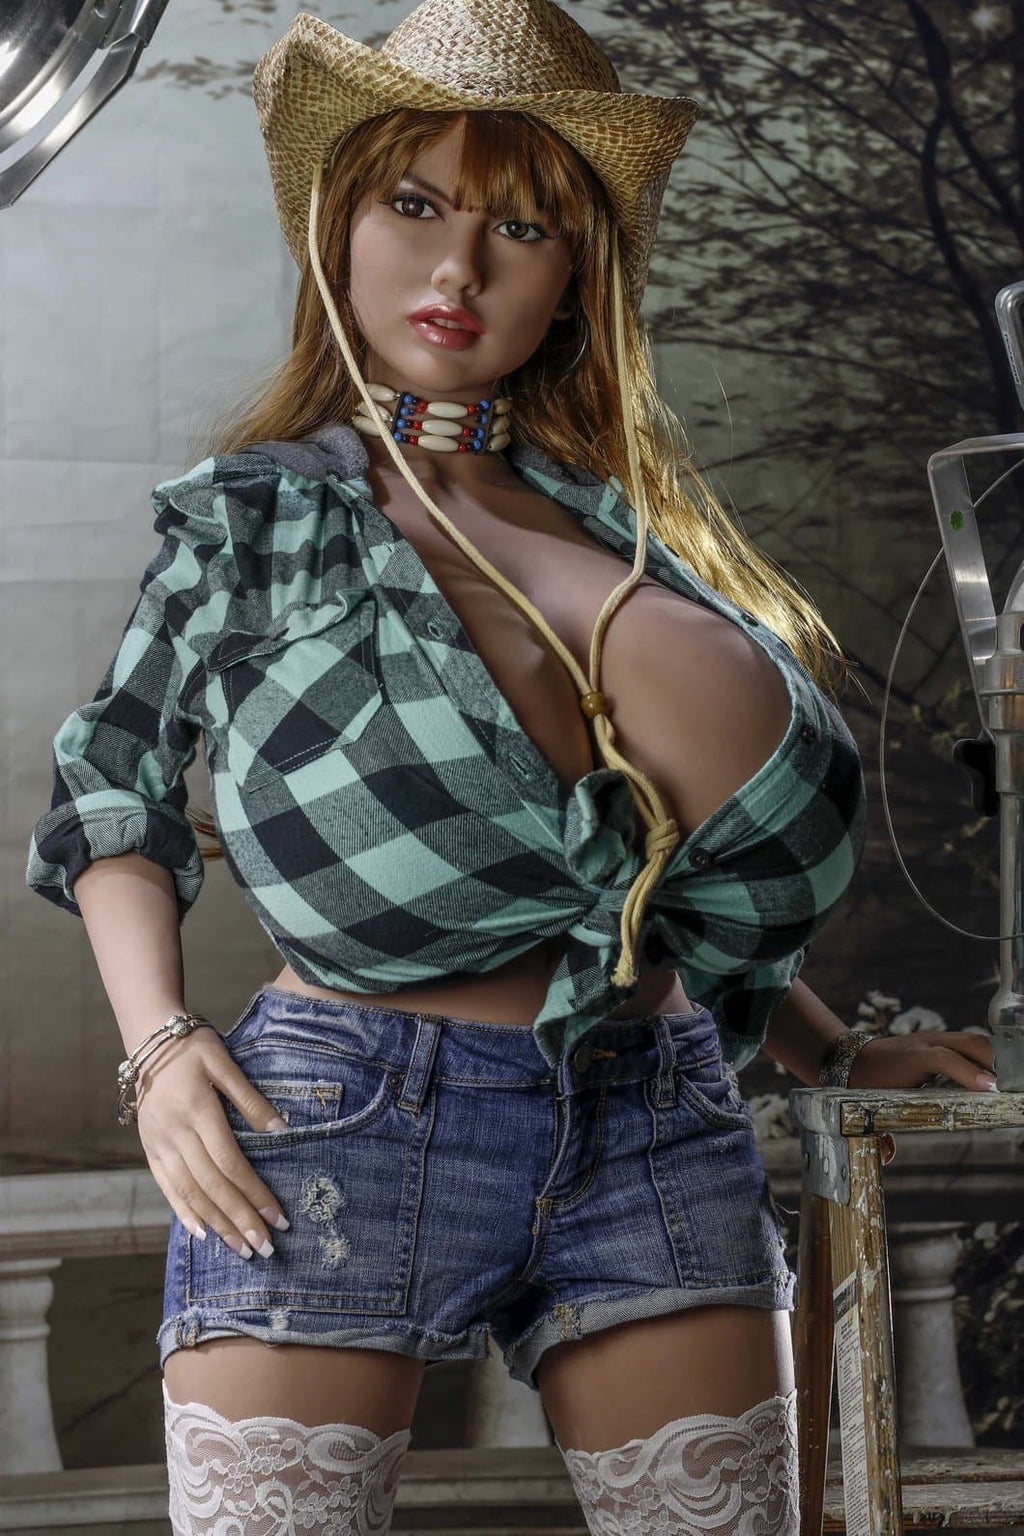 delta 150cm brown hair curvy giant massive tits tpe yl bbw sex doll